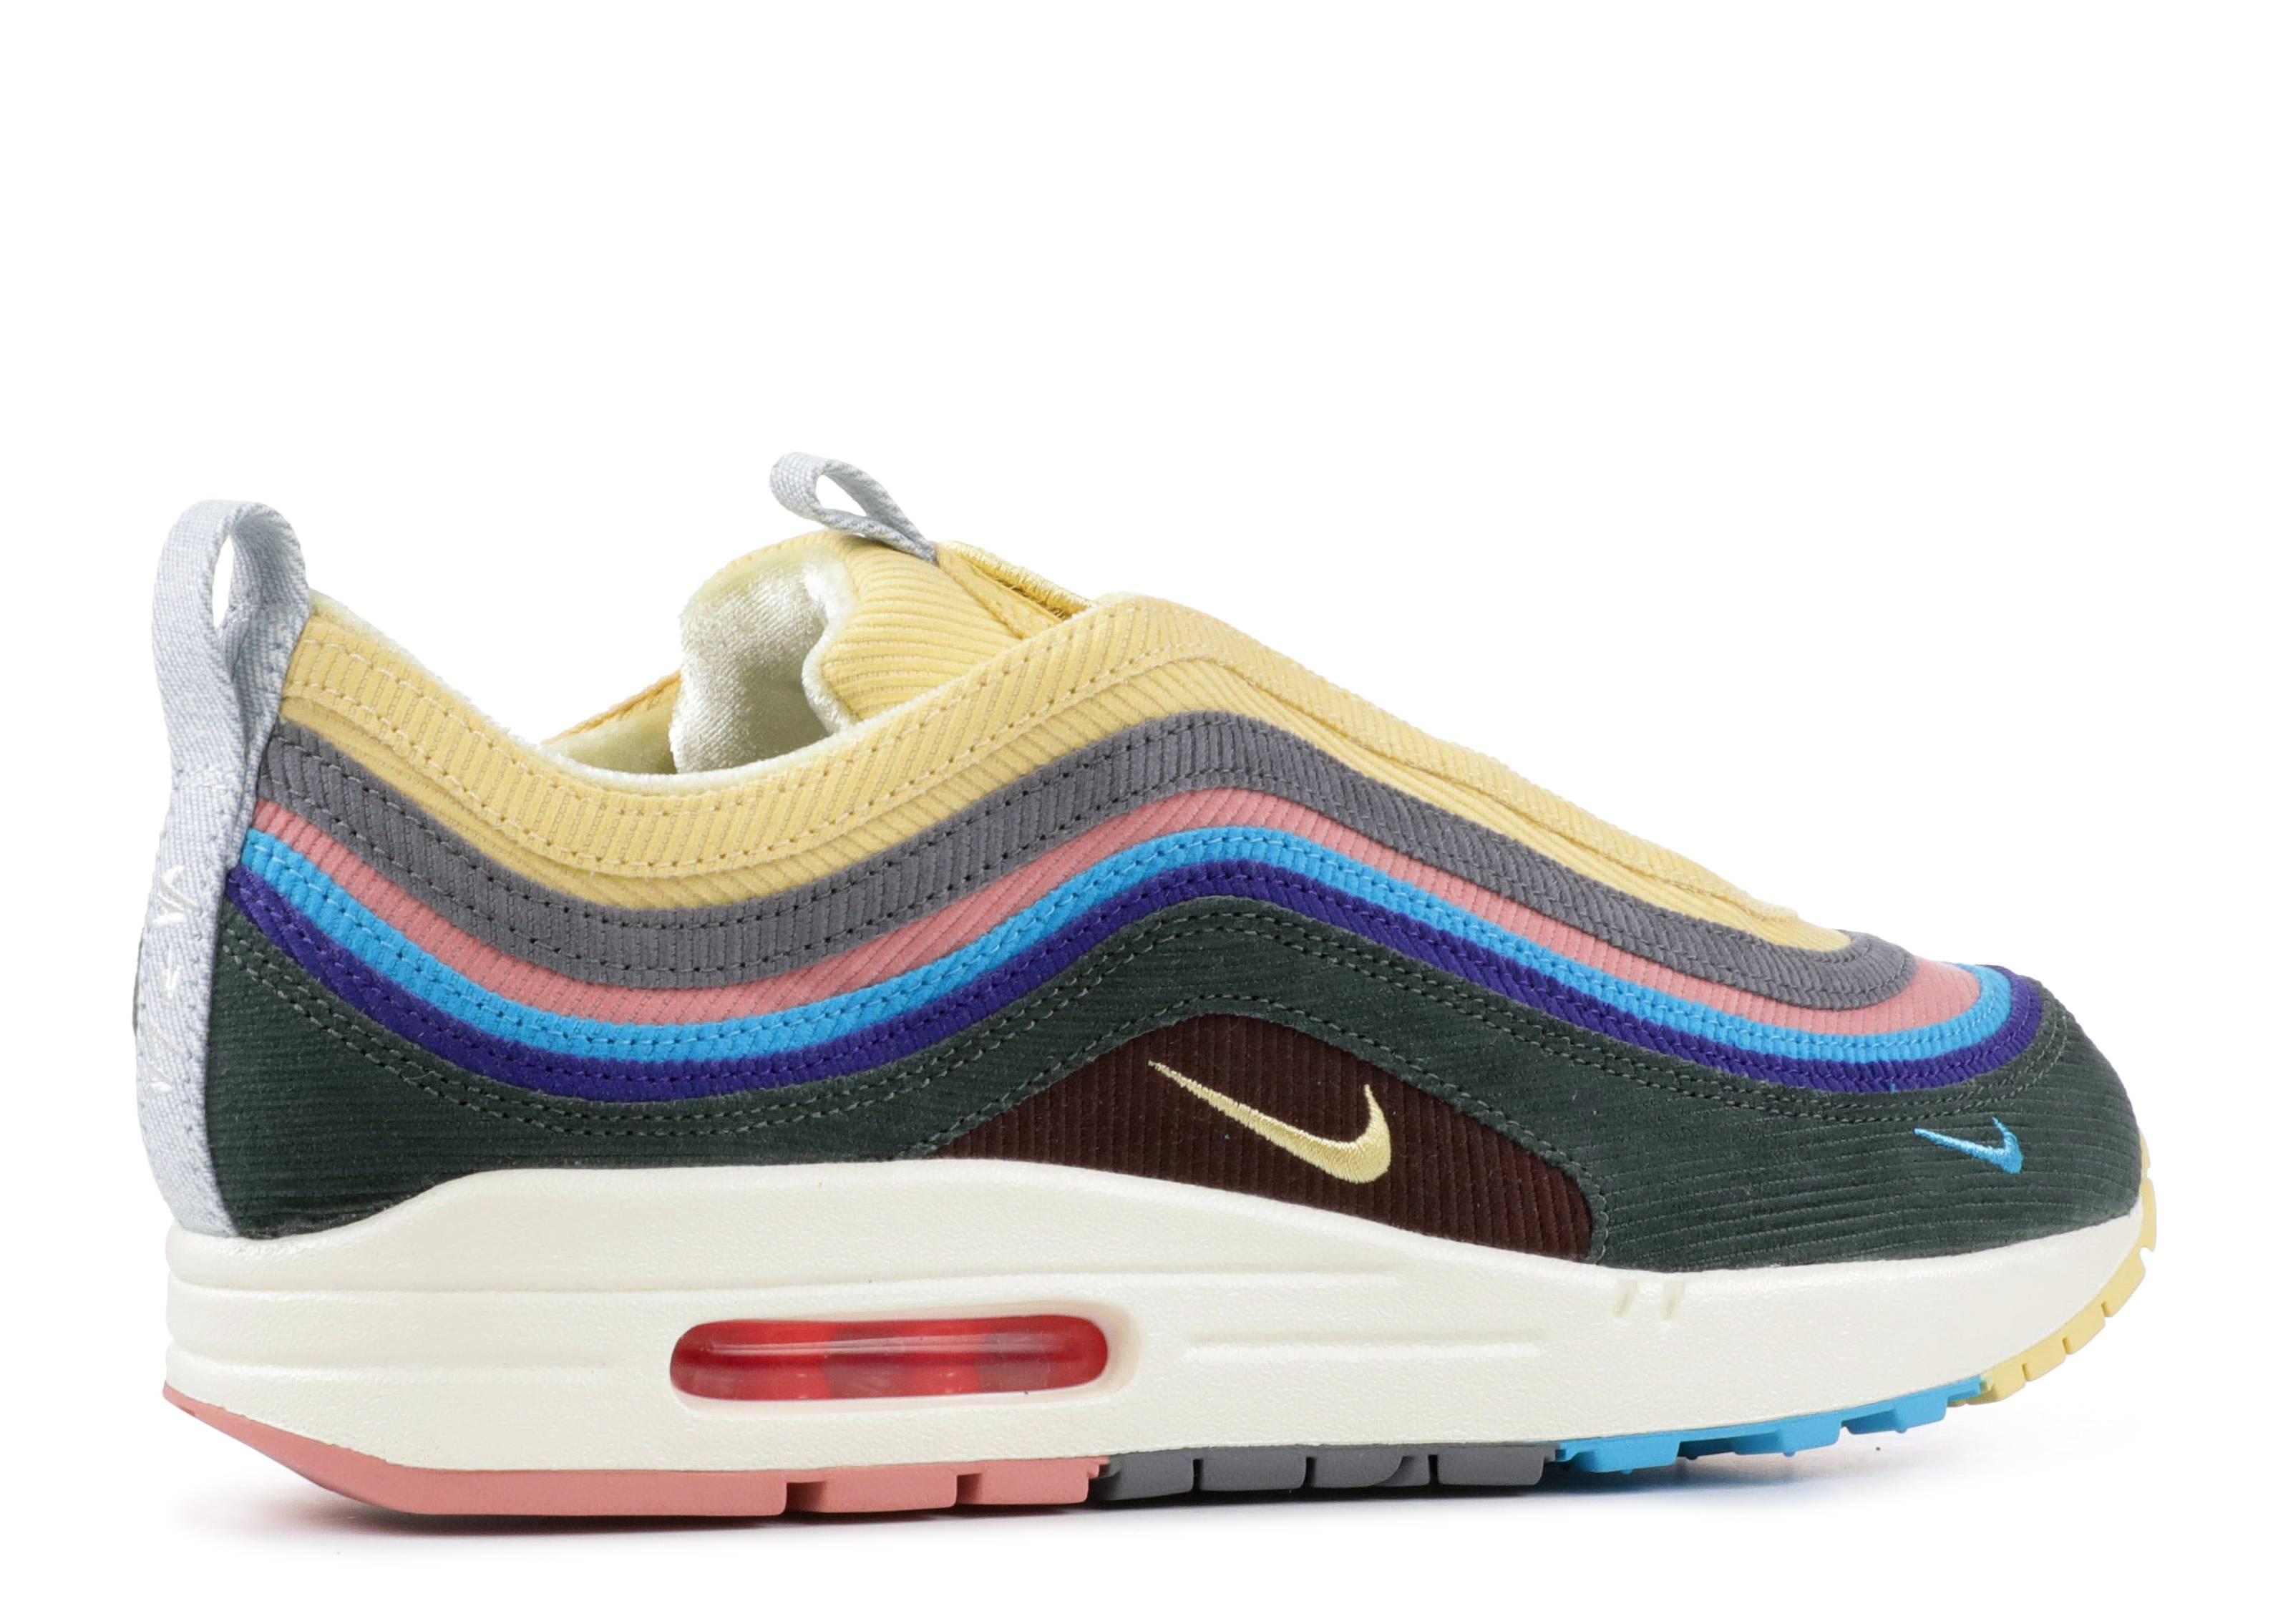 promo code e4c56 4c675 Nike Air Max 97 1 Sean Wotherspoon (Extra Lace Only) - 3